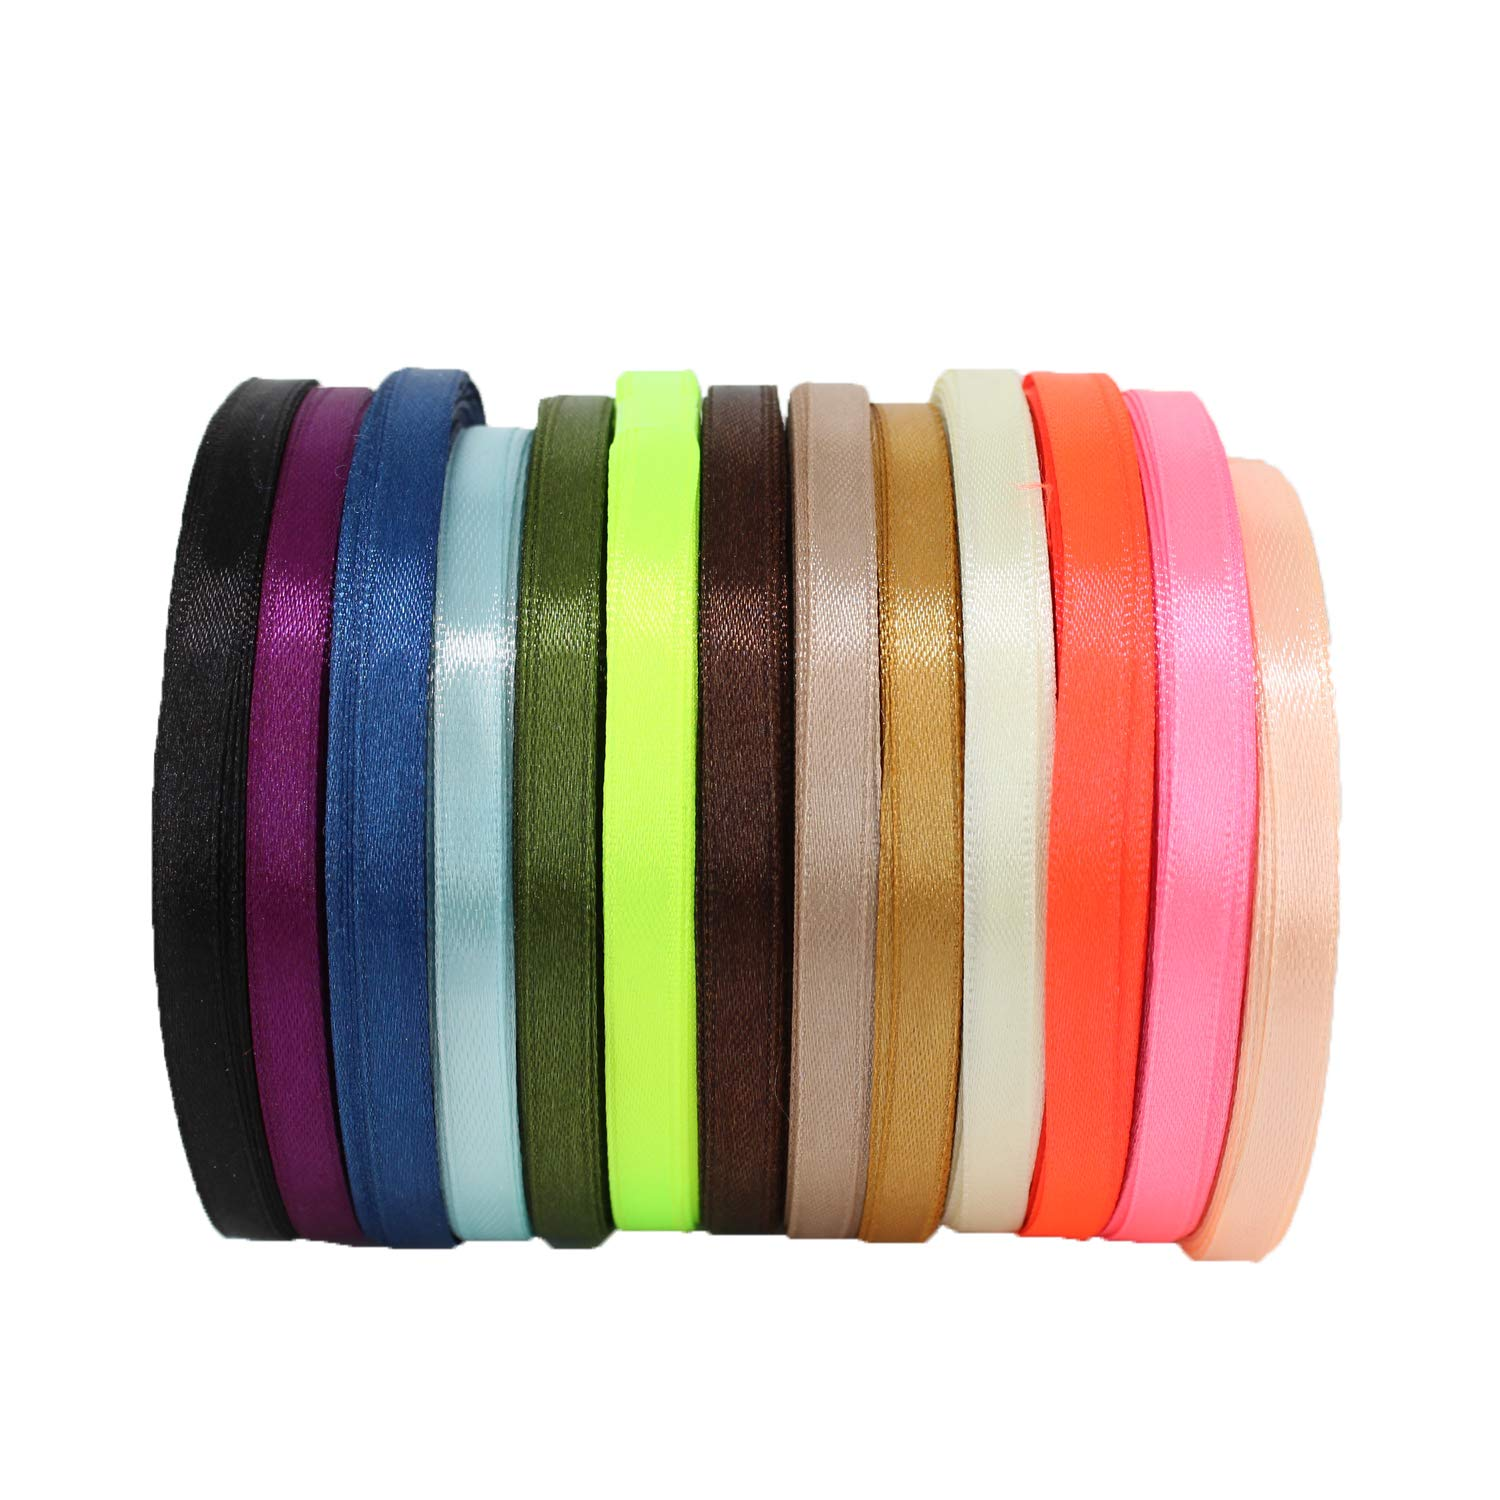 Bows Trimming Shop 6mm Satin Ribbon Rolls Birthday Cake and Home Decoration Option 1 Arts and Crafts 13 Assorted Colours Polyester Ribbons for Fabric Wedding VALUE PACK